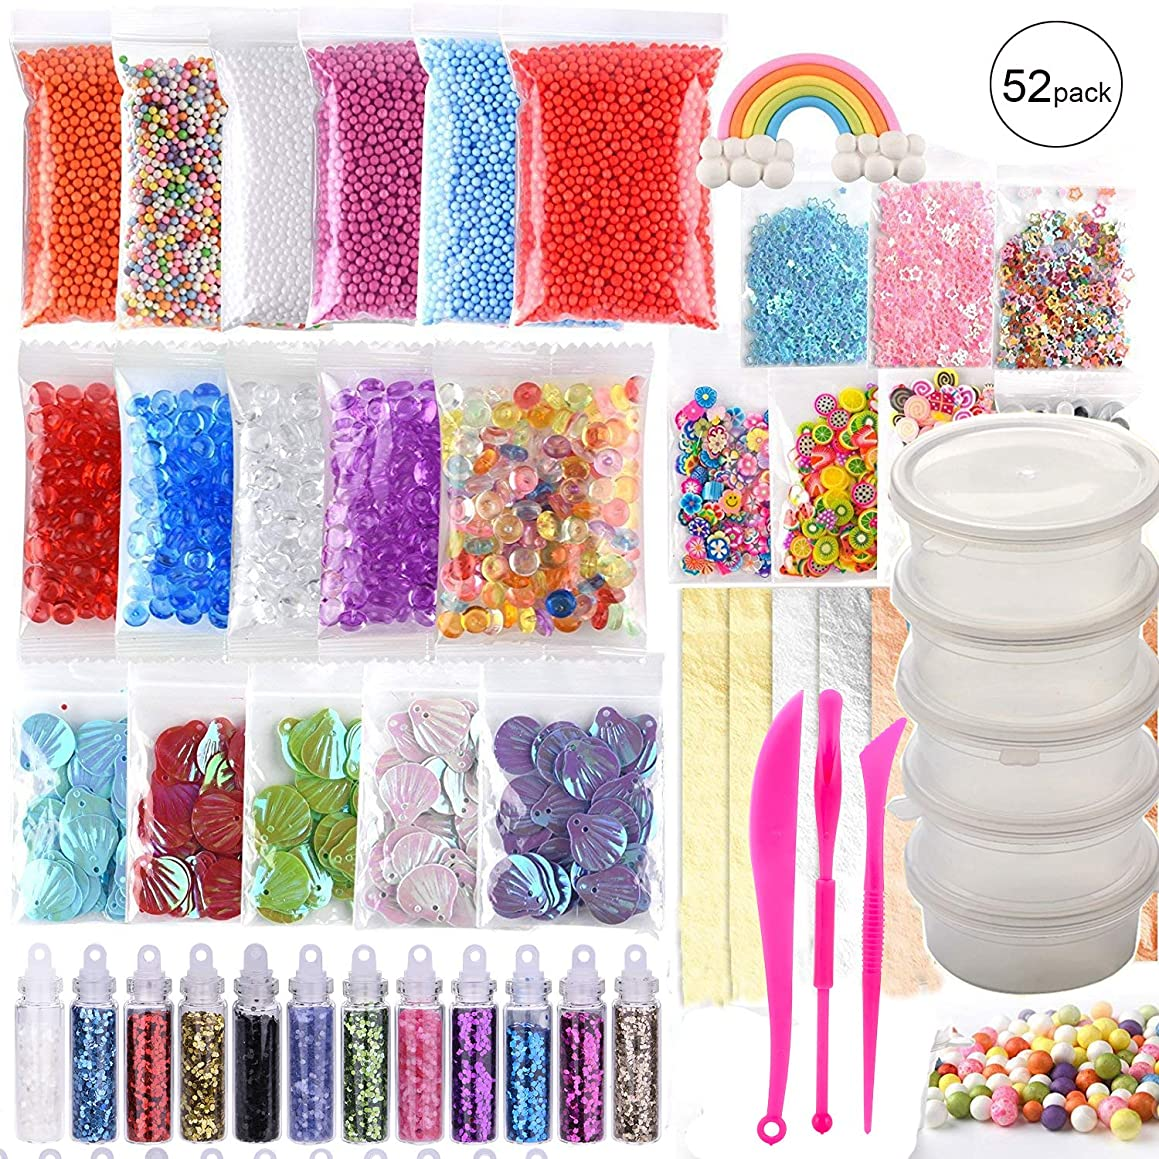 Slime Supplies Kit, 52 Pack Slime Stuff Charms, Include Glitter Shake, Foam Balls, Fishbowl Beads, Slices, Shell, Sequin, Google Eyes and Imitation Gold Leaf for Girls and Boys (Not Contain Slime)